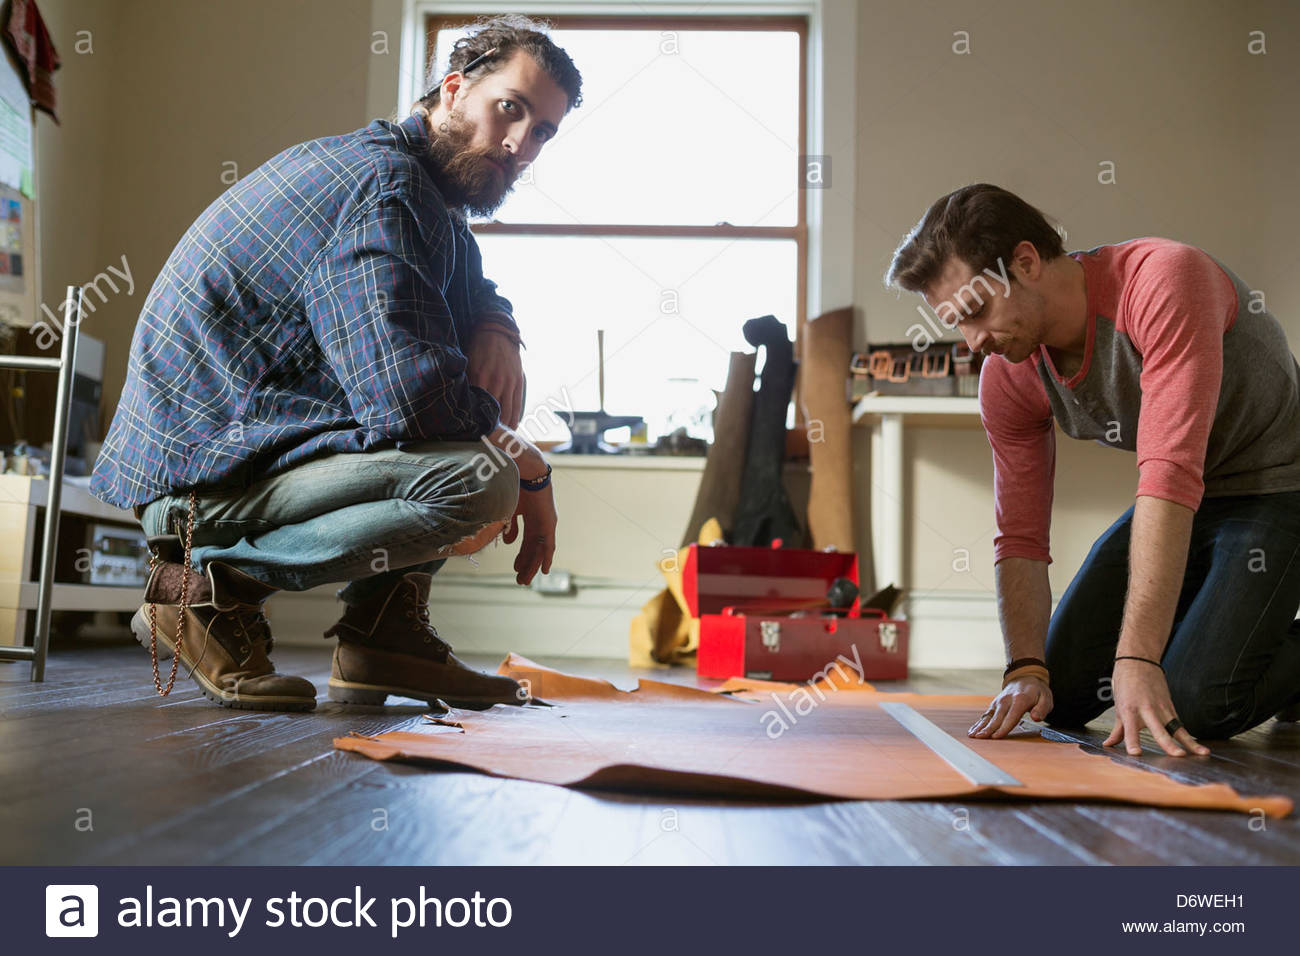 Portrait of young man crouching while colleague examines leather in workshop - Stock Image